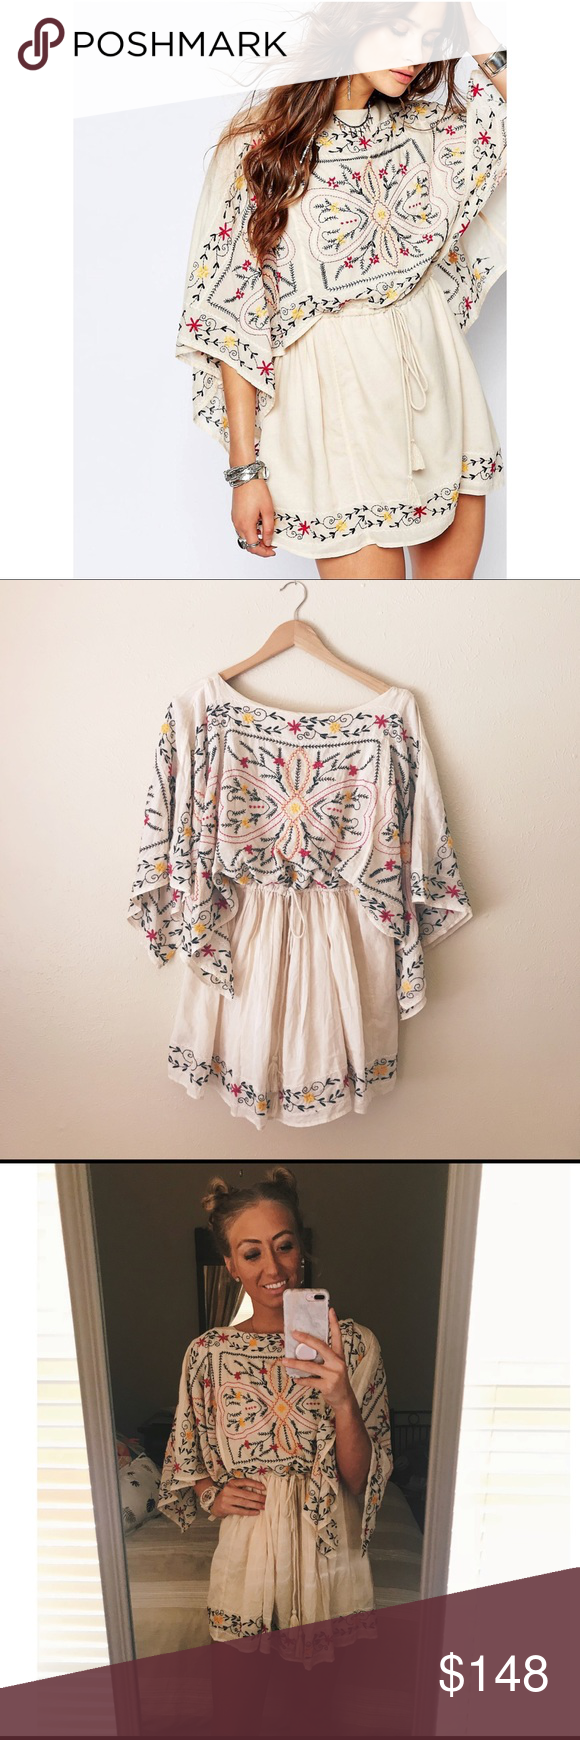 5ac93e9acd7 nwt free people batiste frida embroidered dress this is a nwt free people  sheer batiste frida